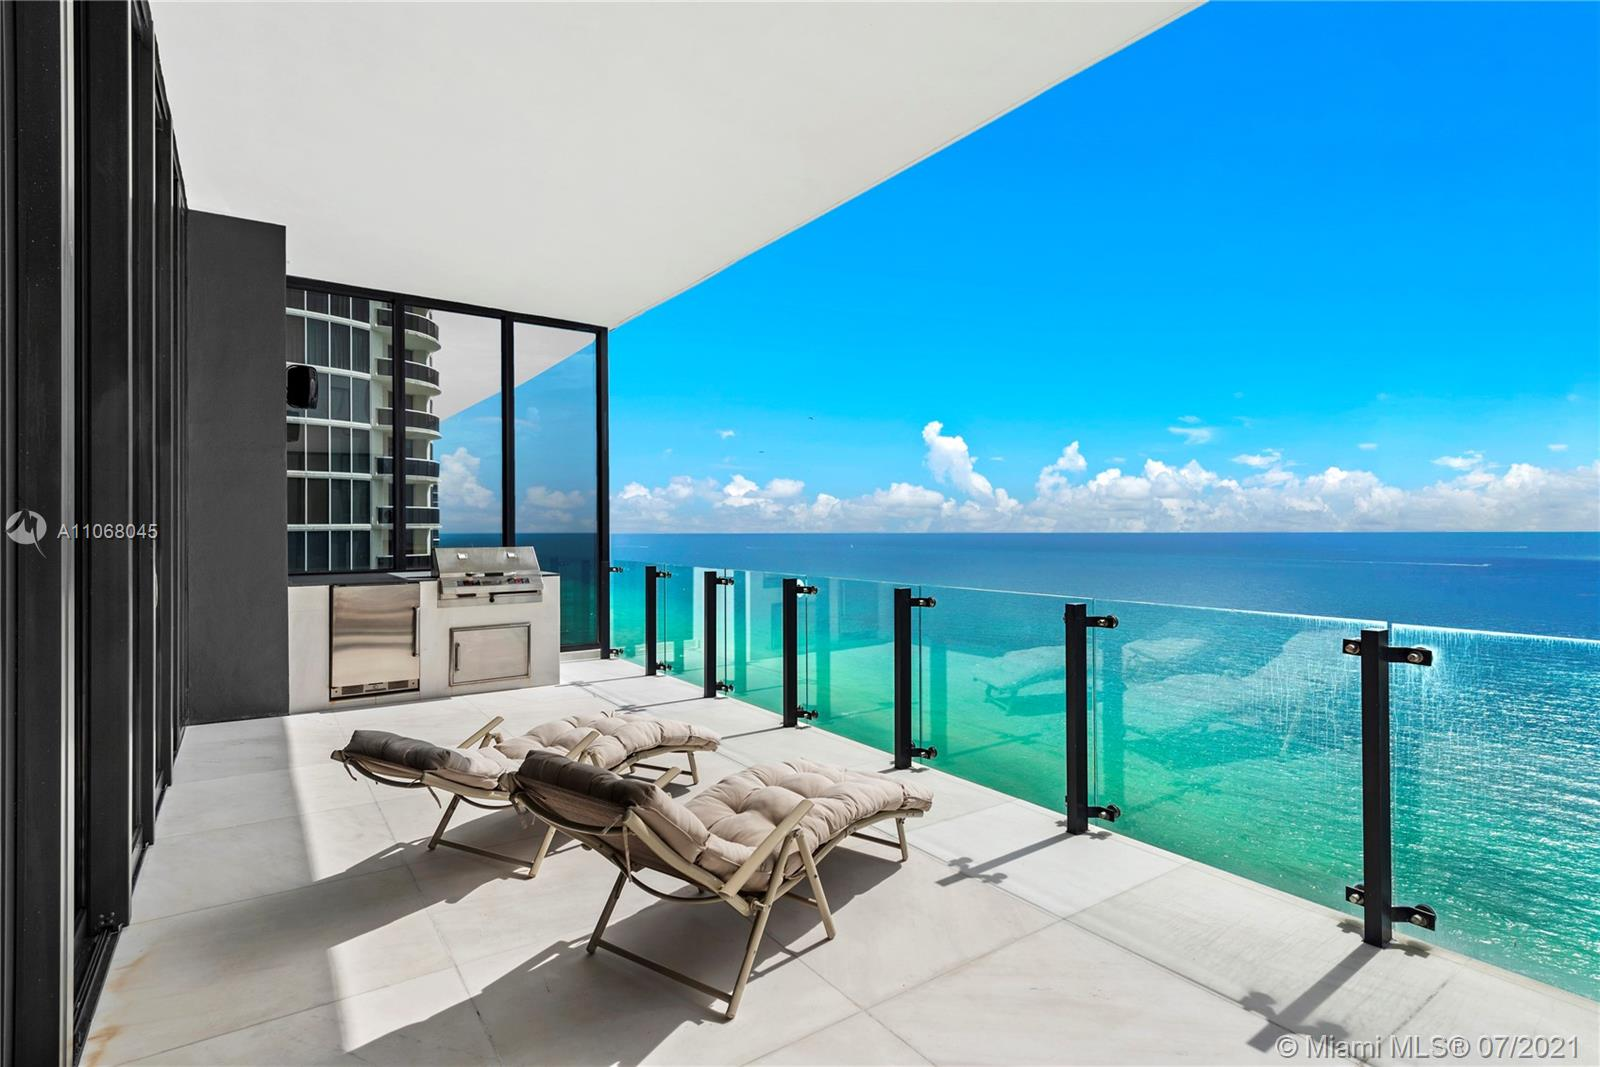 17141 Collins Ave, Unit #2501 Luxury Real Estate